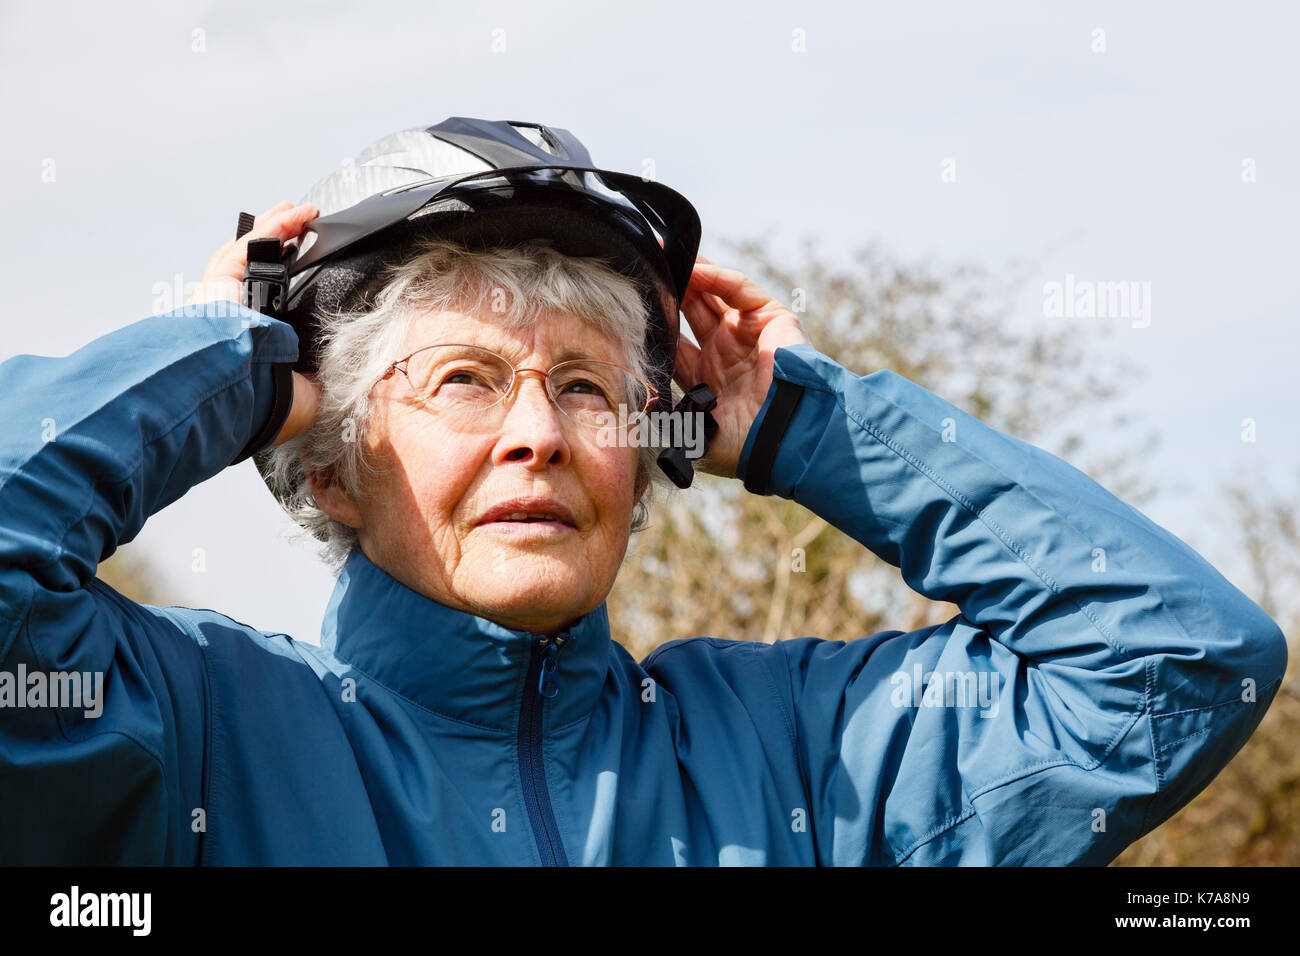 Active senior elderly woman retiree putting on a cycling helmet preparing to go for a cycle ride to keep fit in retirement. England, UK, Britain - Stock Image